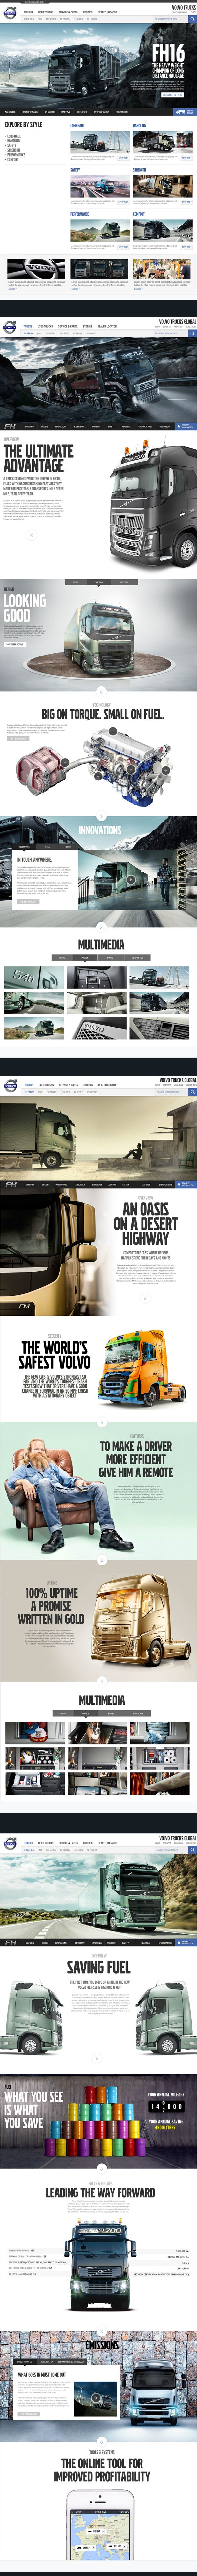 Volvo Trucks - Global Website on Behance